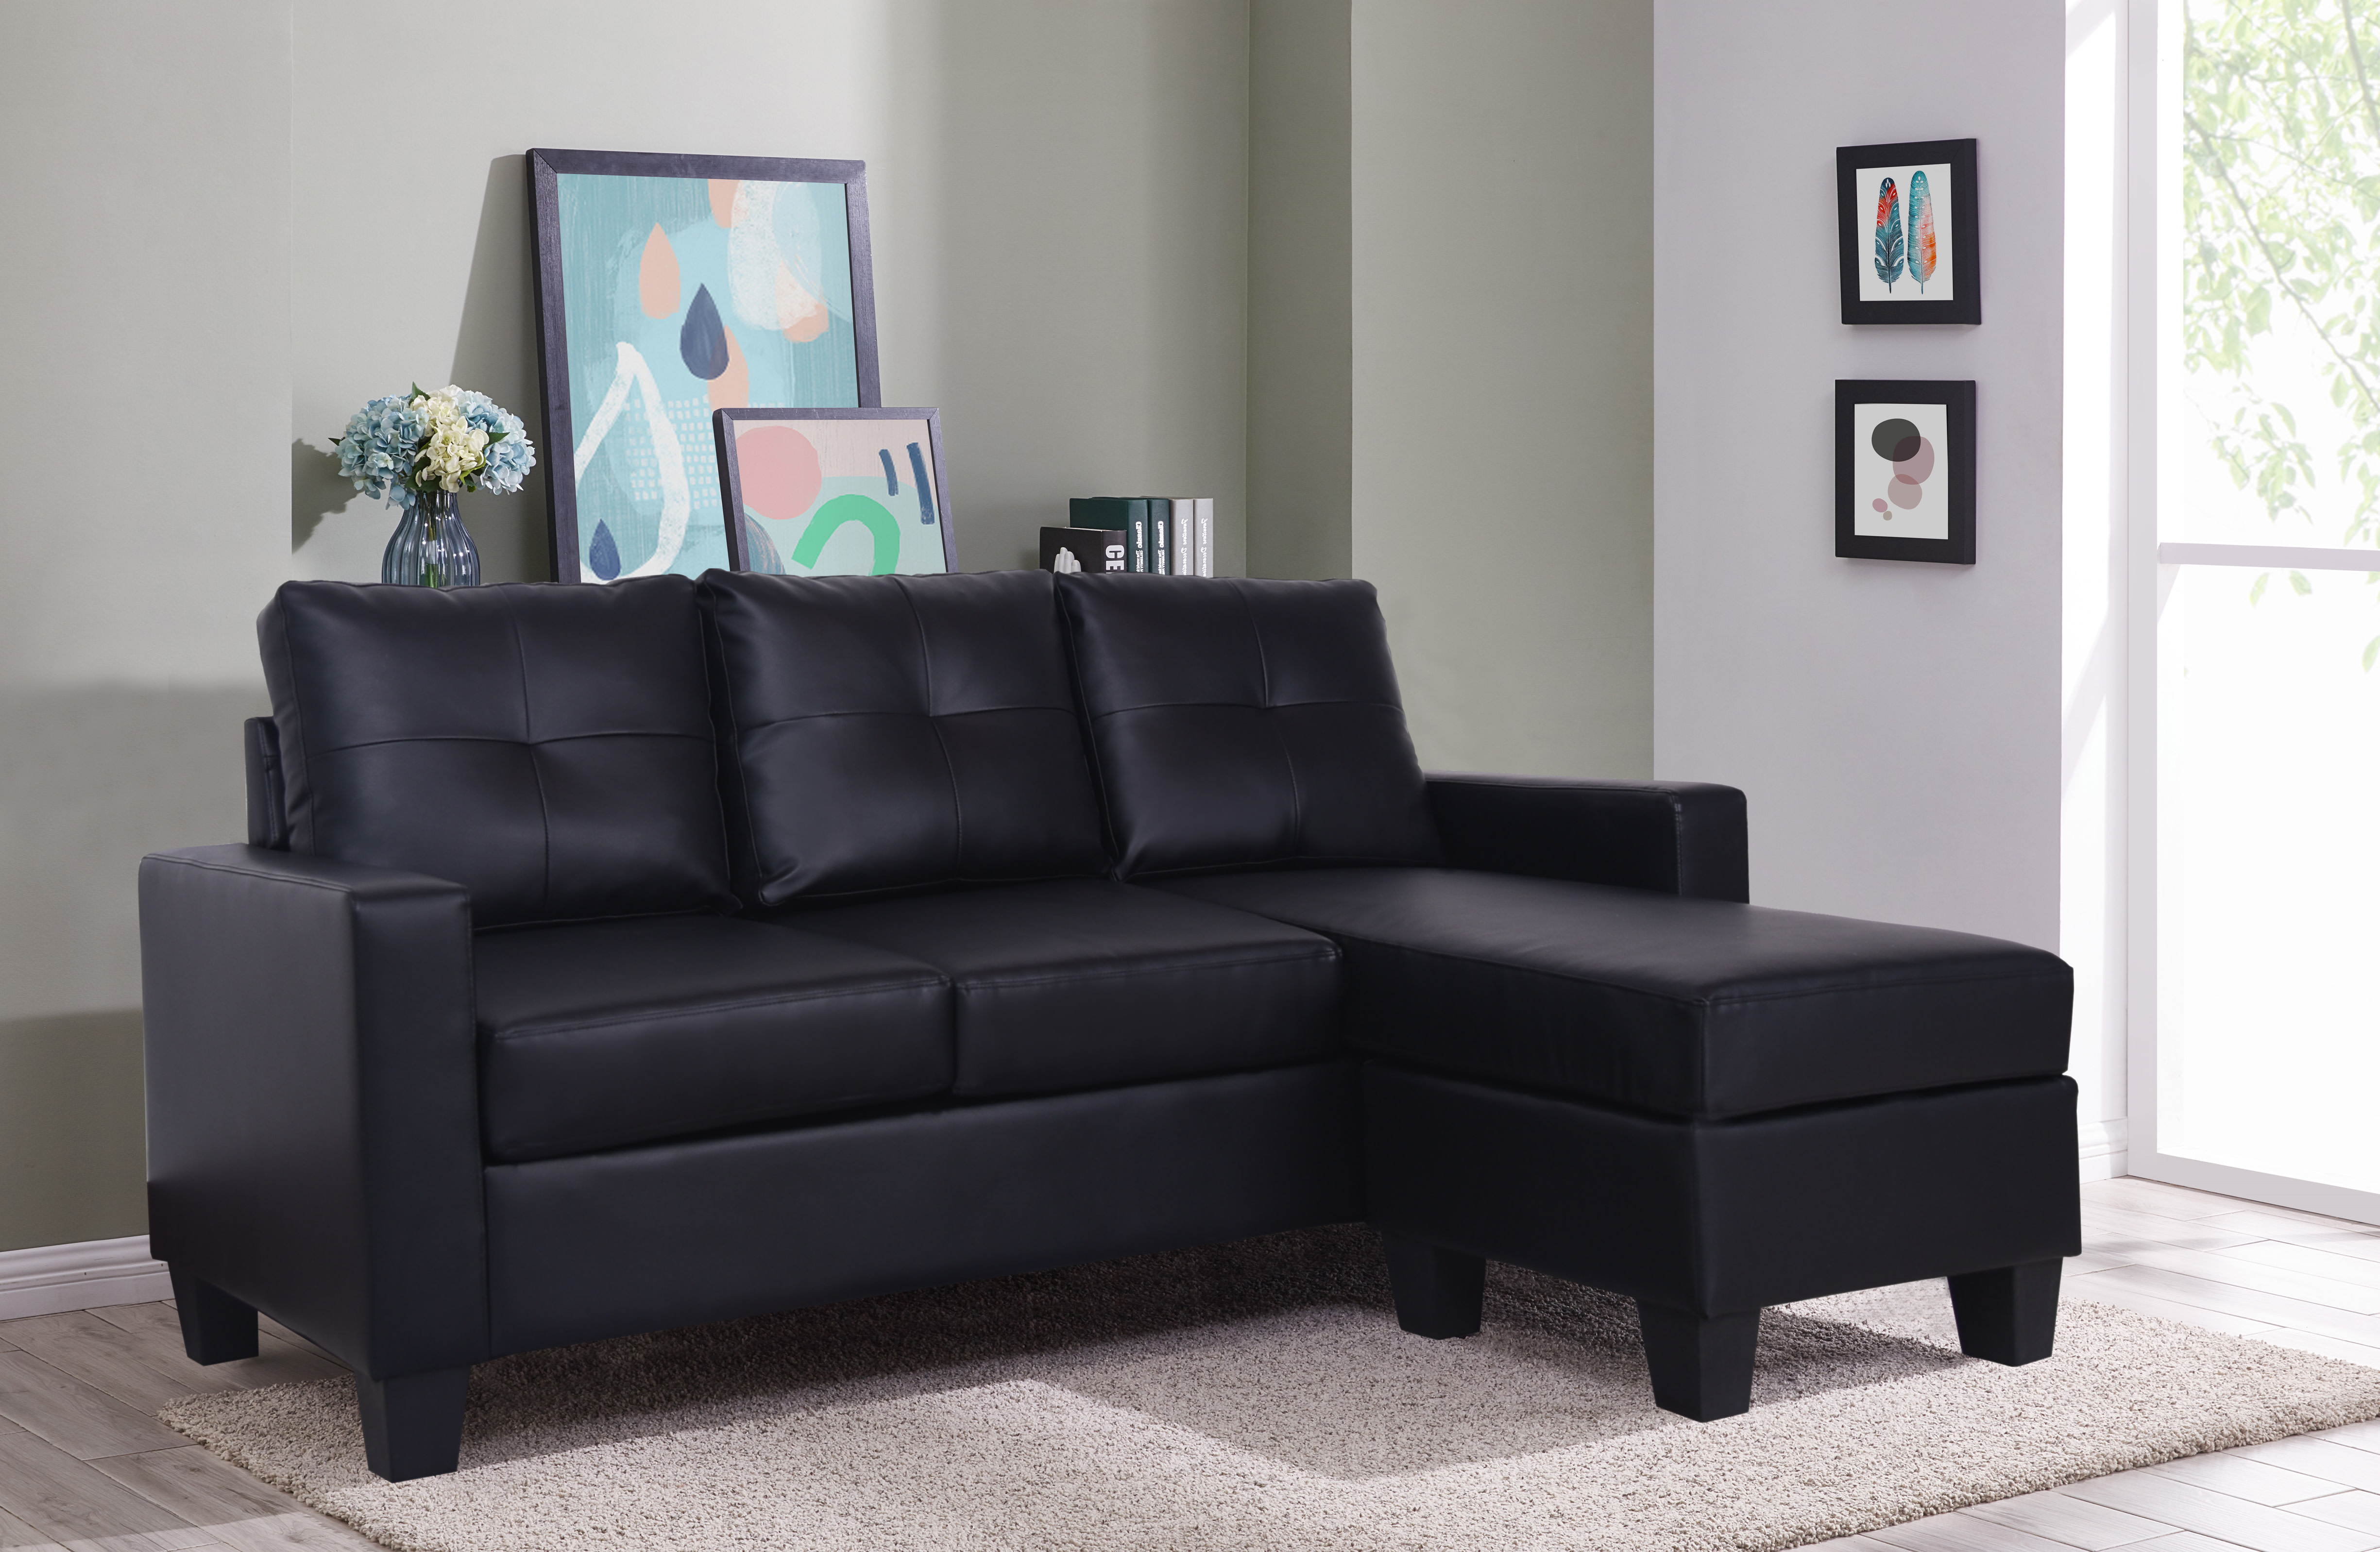 Max Black Sectional with Chaise